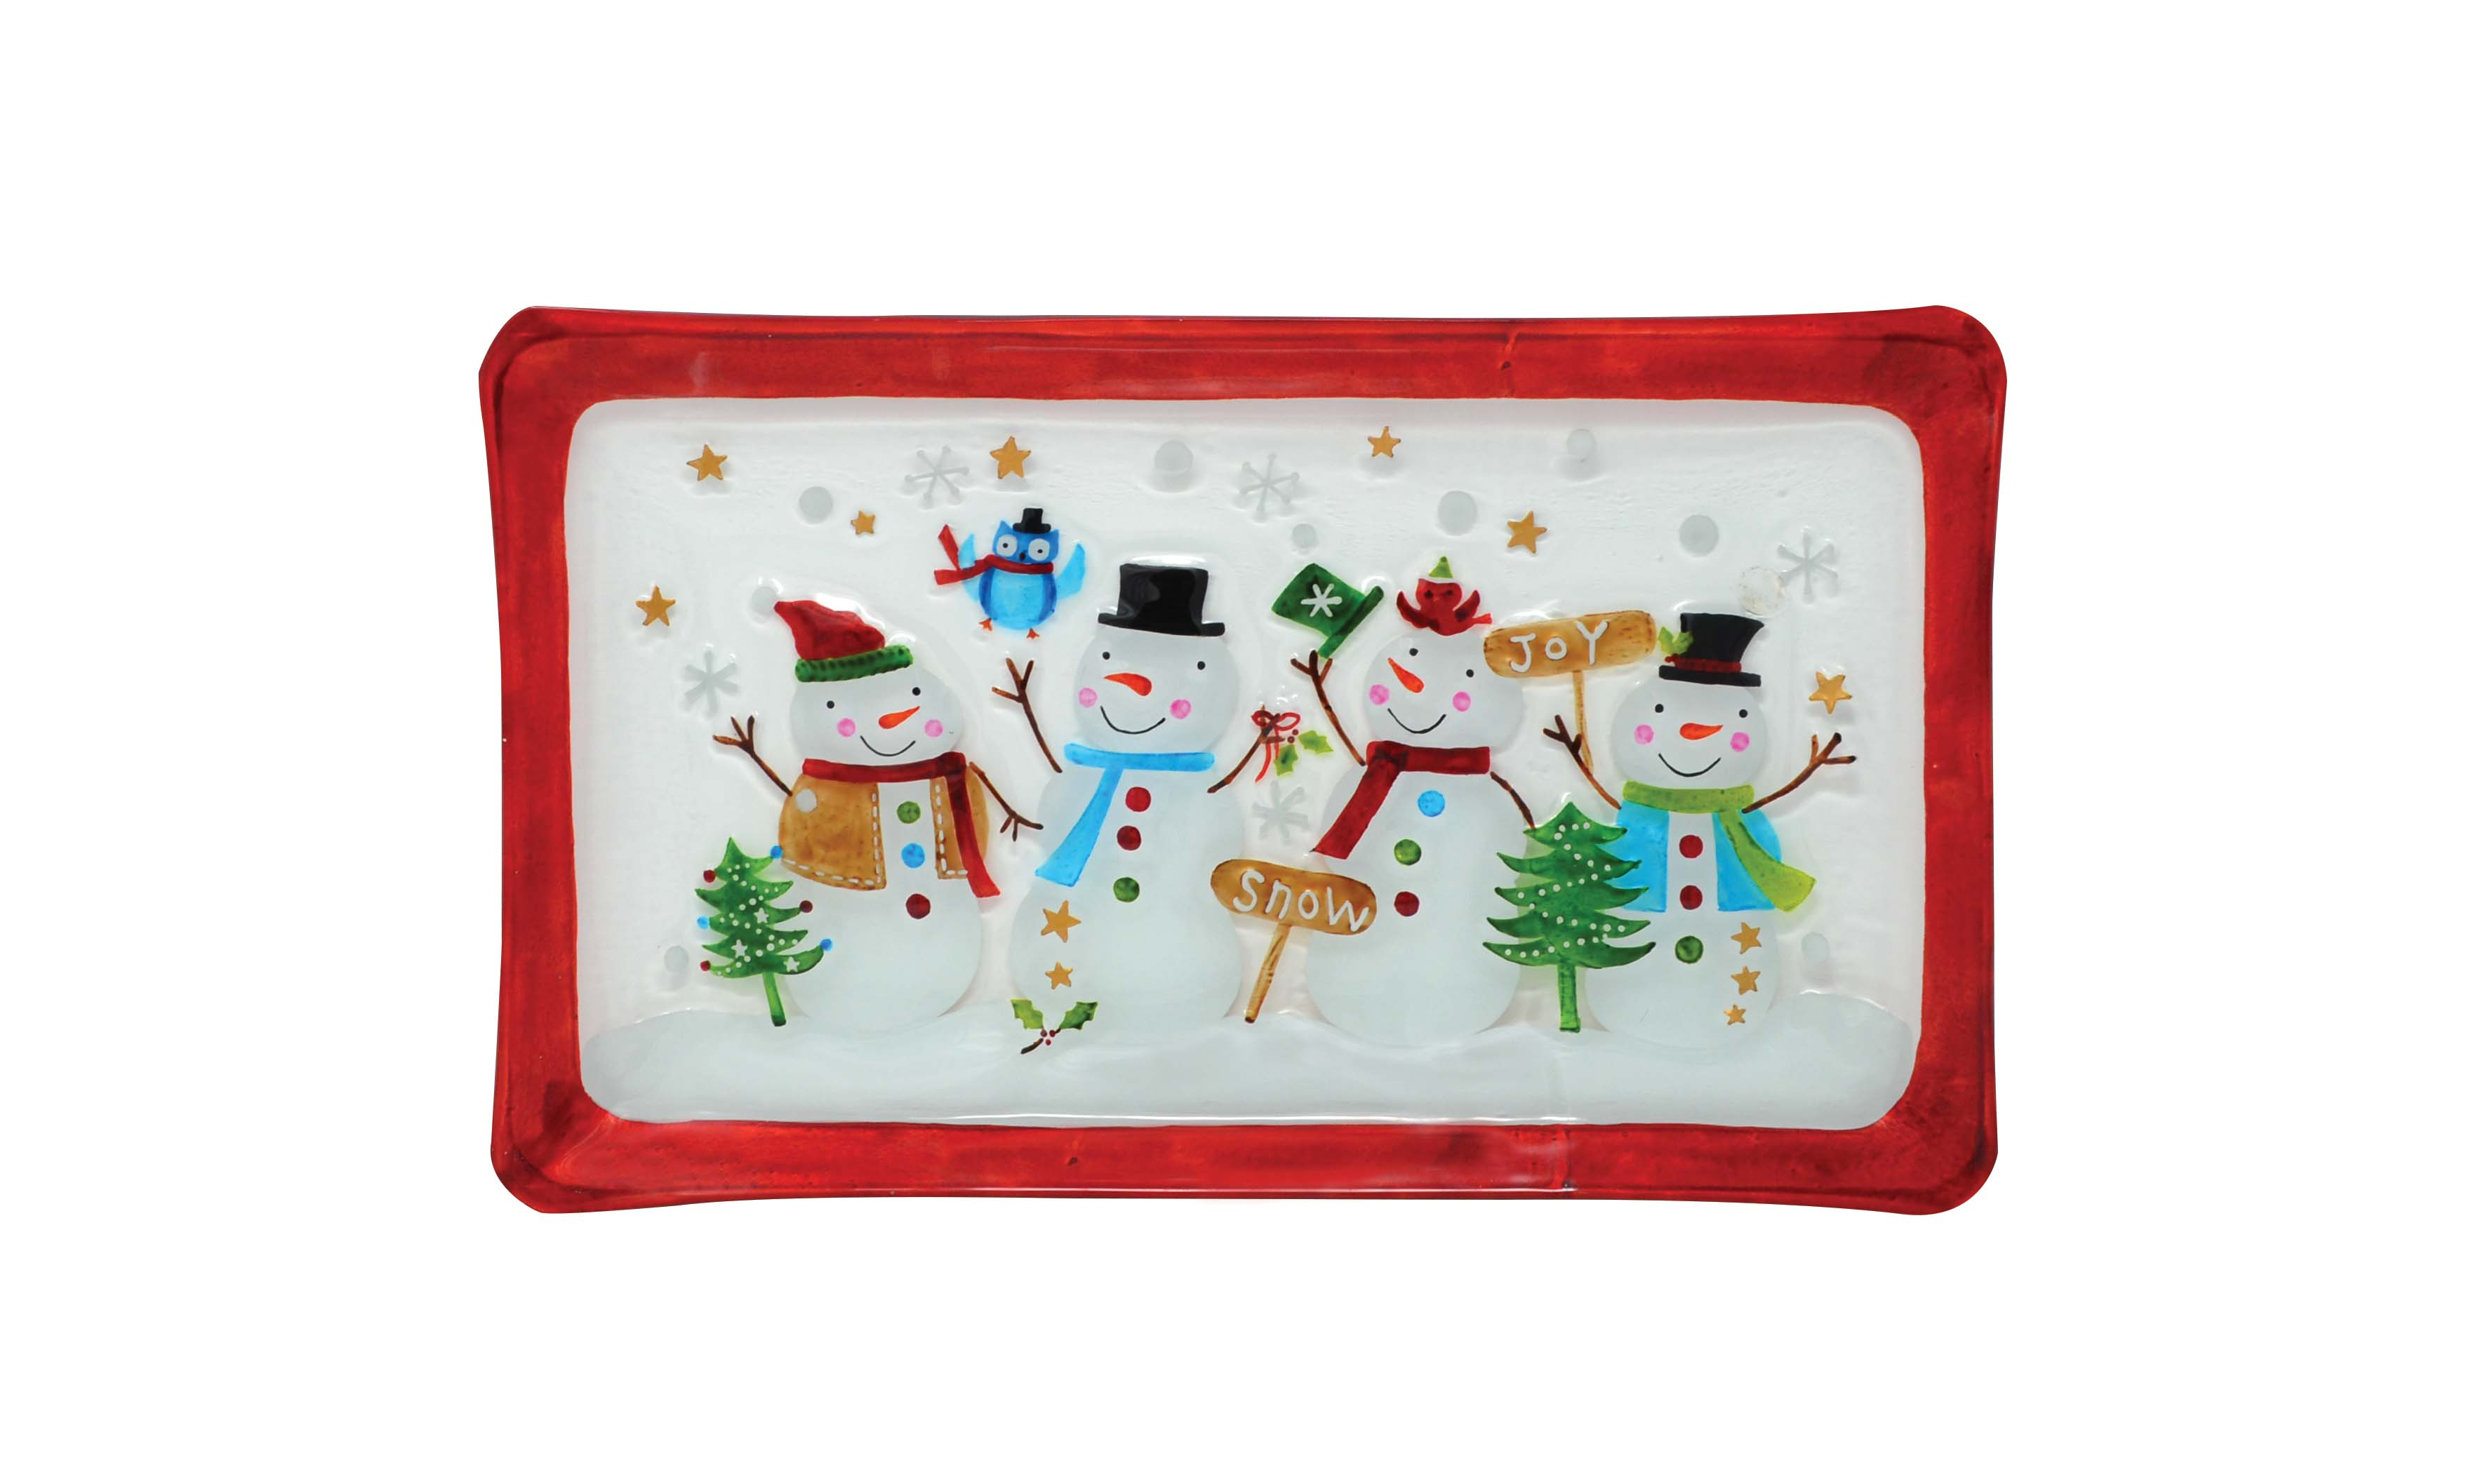 Platter - Snowman Family - 14.5 inch x 9 inch